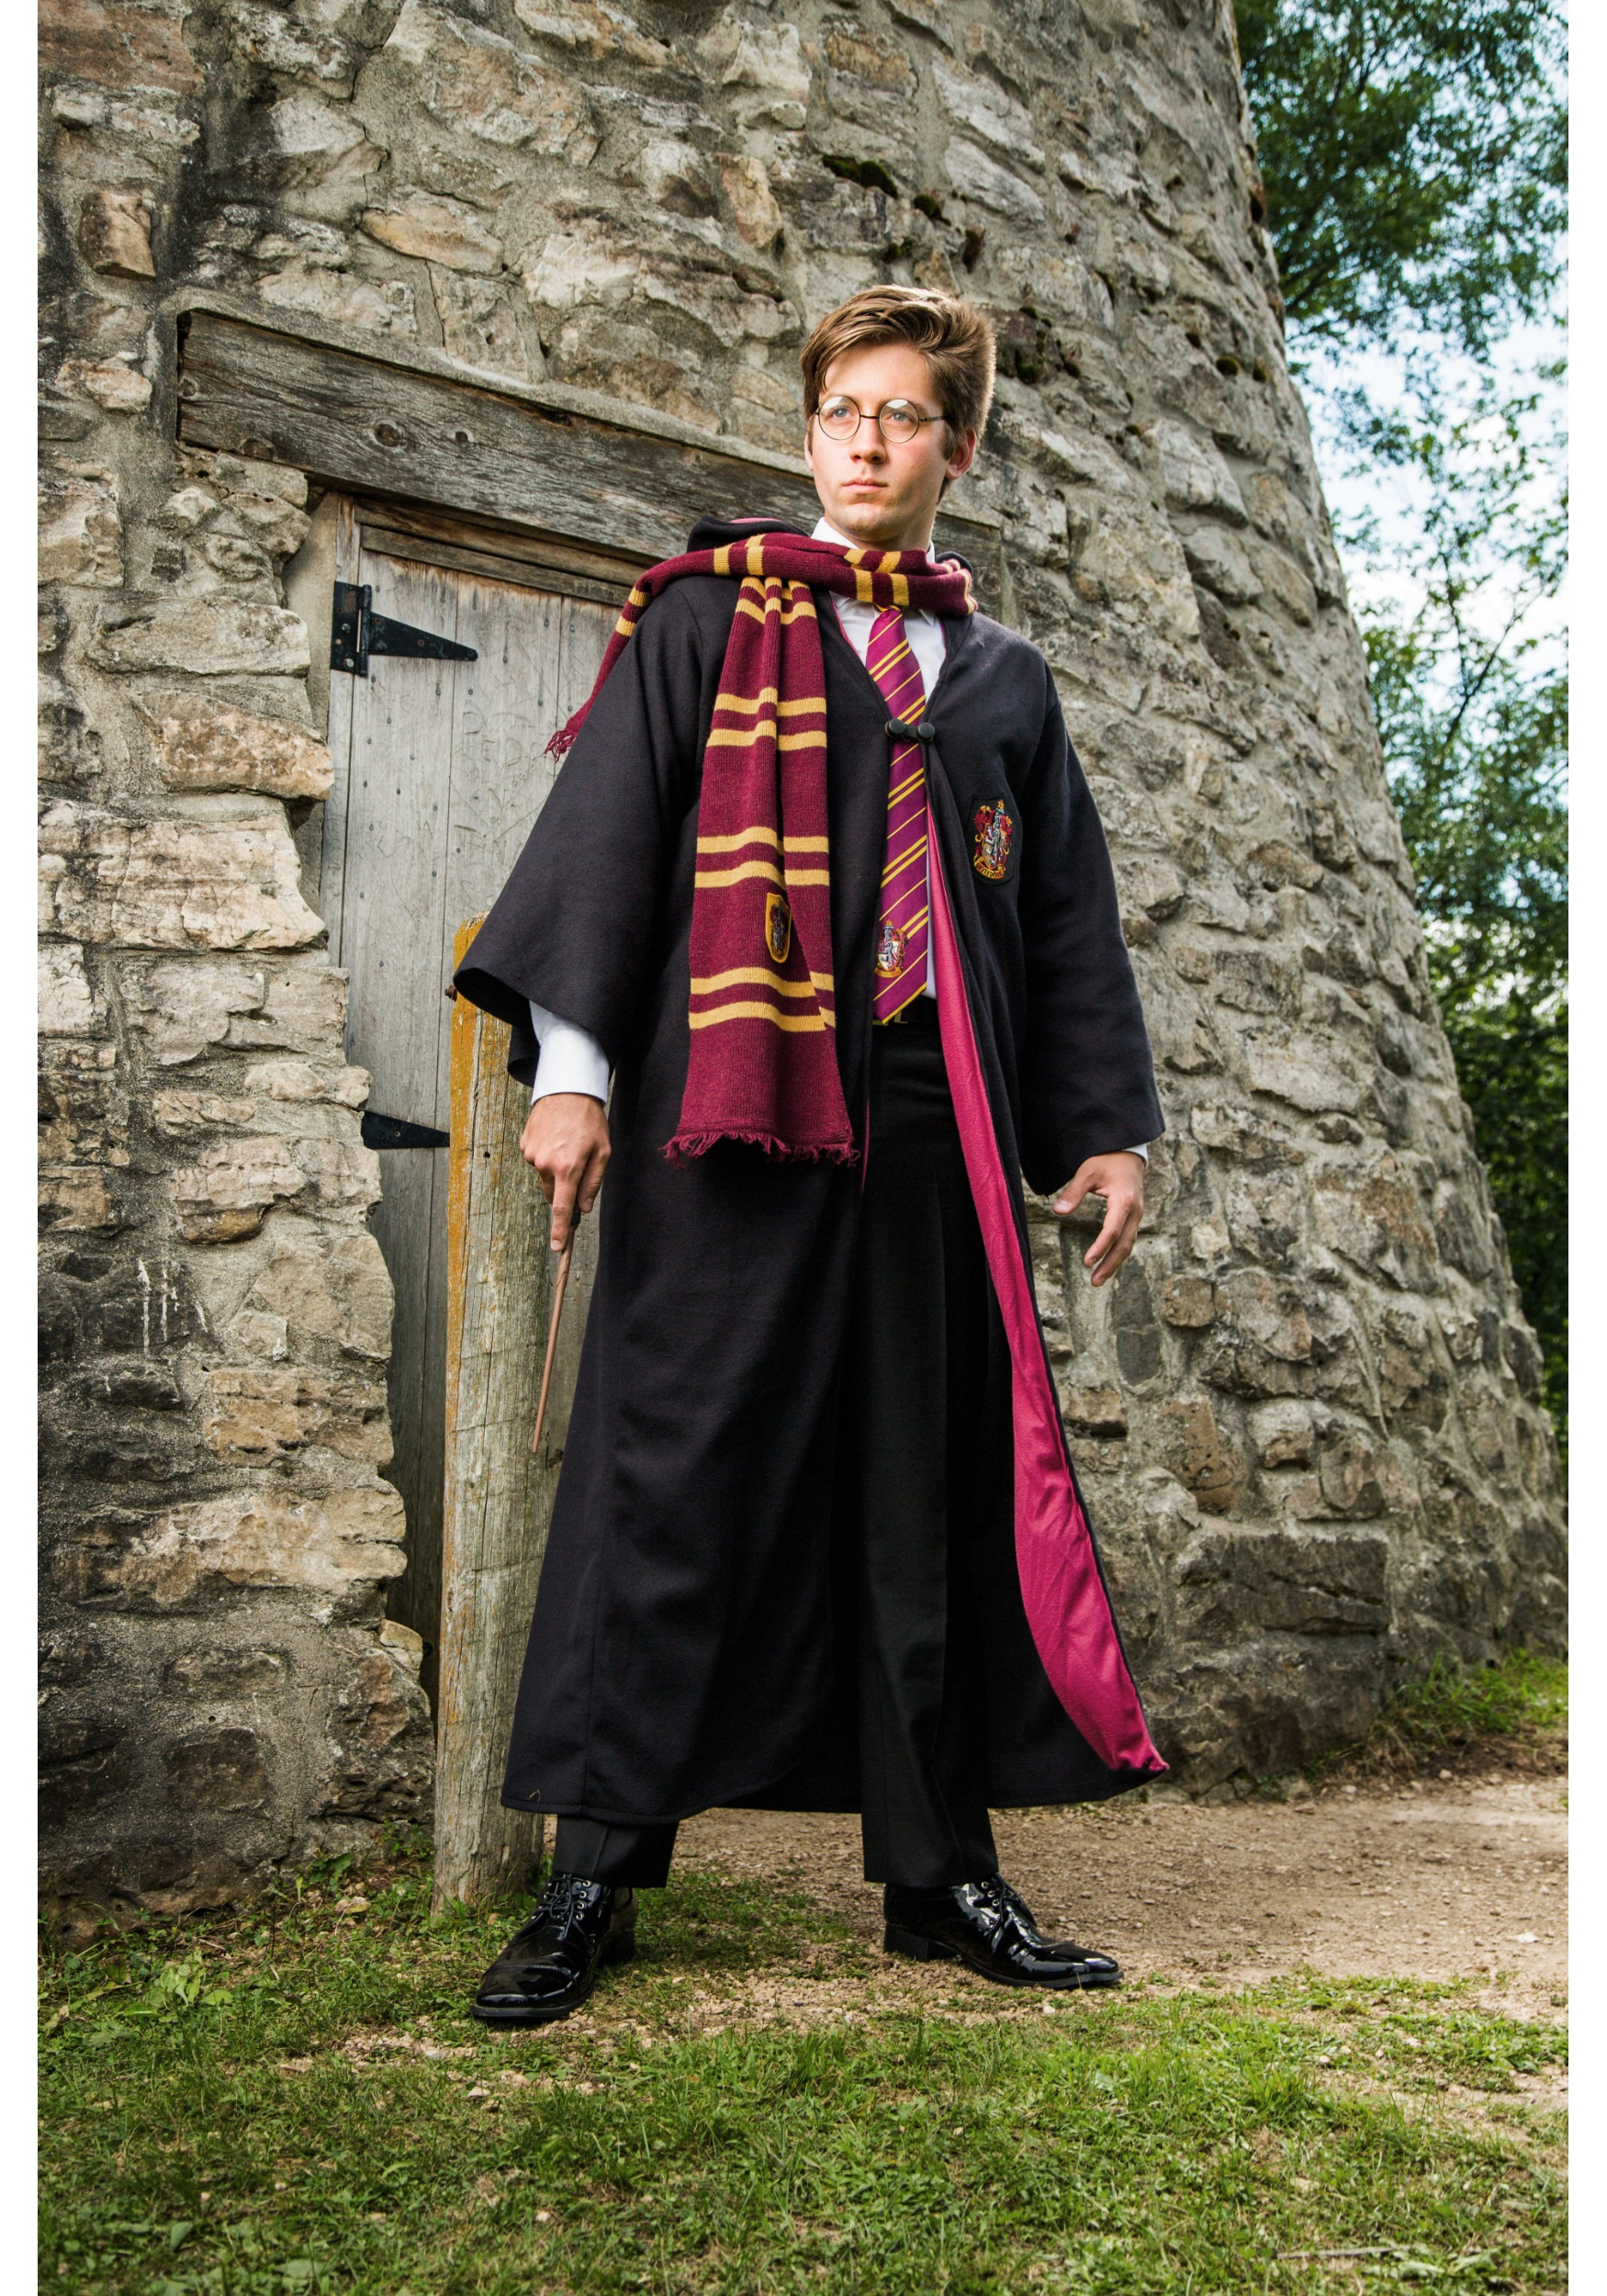 Admirable Adult Harry Potter Costume Harry Potter Halloween Costumes Diy Harry Potter Halloween Costumes Party City baby Harry Potter Halloween Costumes